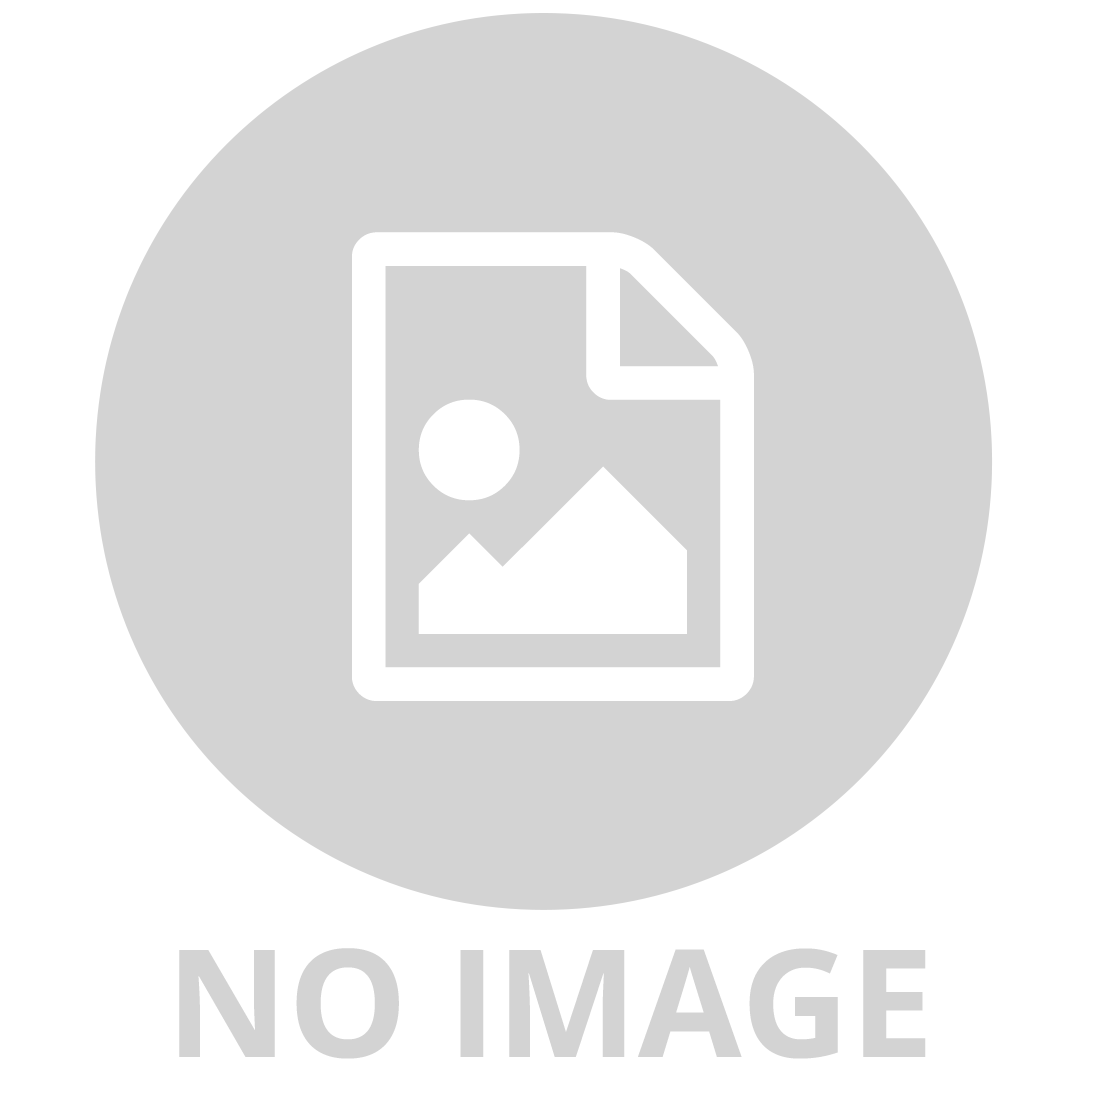 HATCHIMALS COLLEGTIBLES PET LOVER 5PK S7